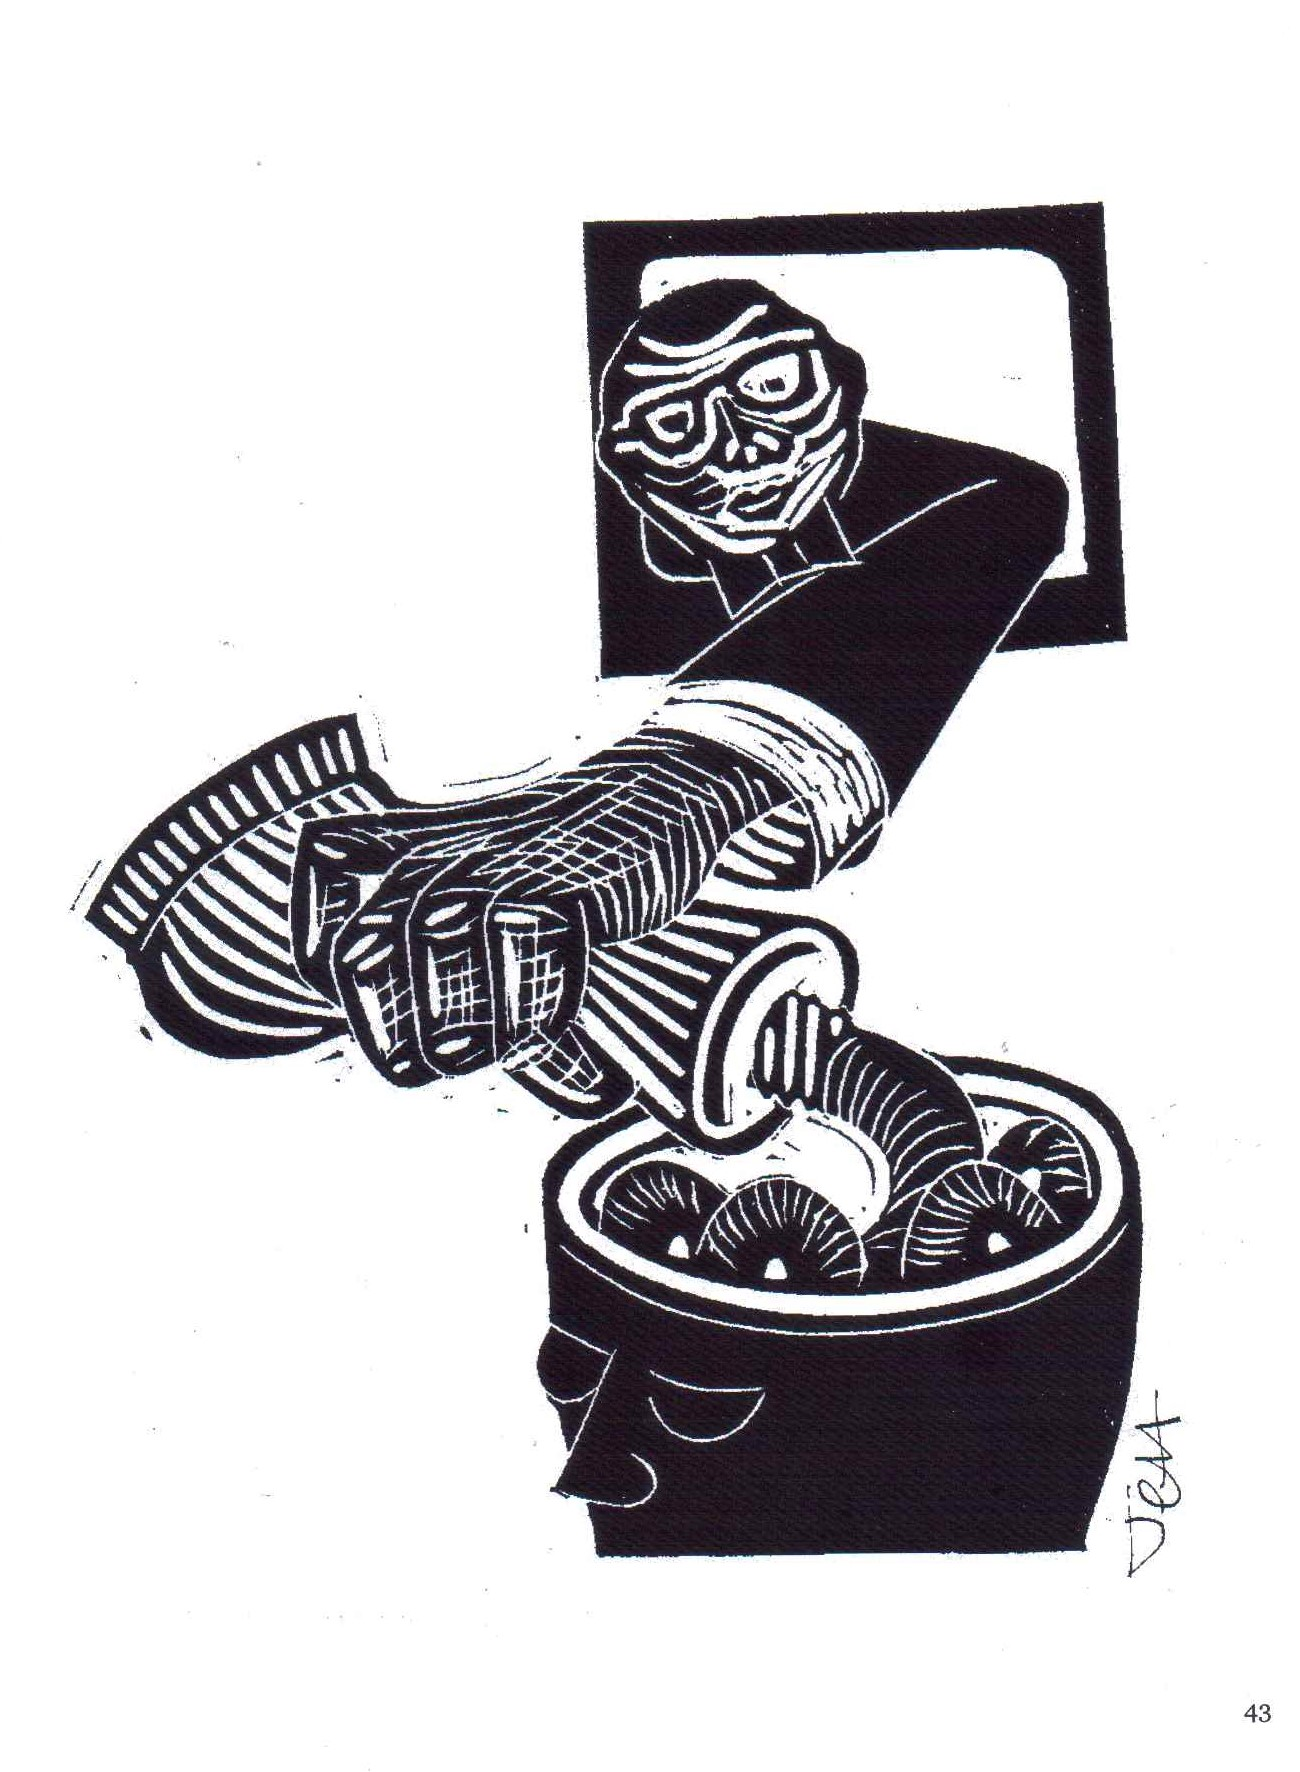 Jeff Perks. Iraq. Fill Her Up! Linocut. 30x20cm